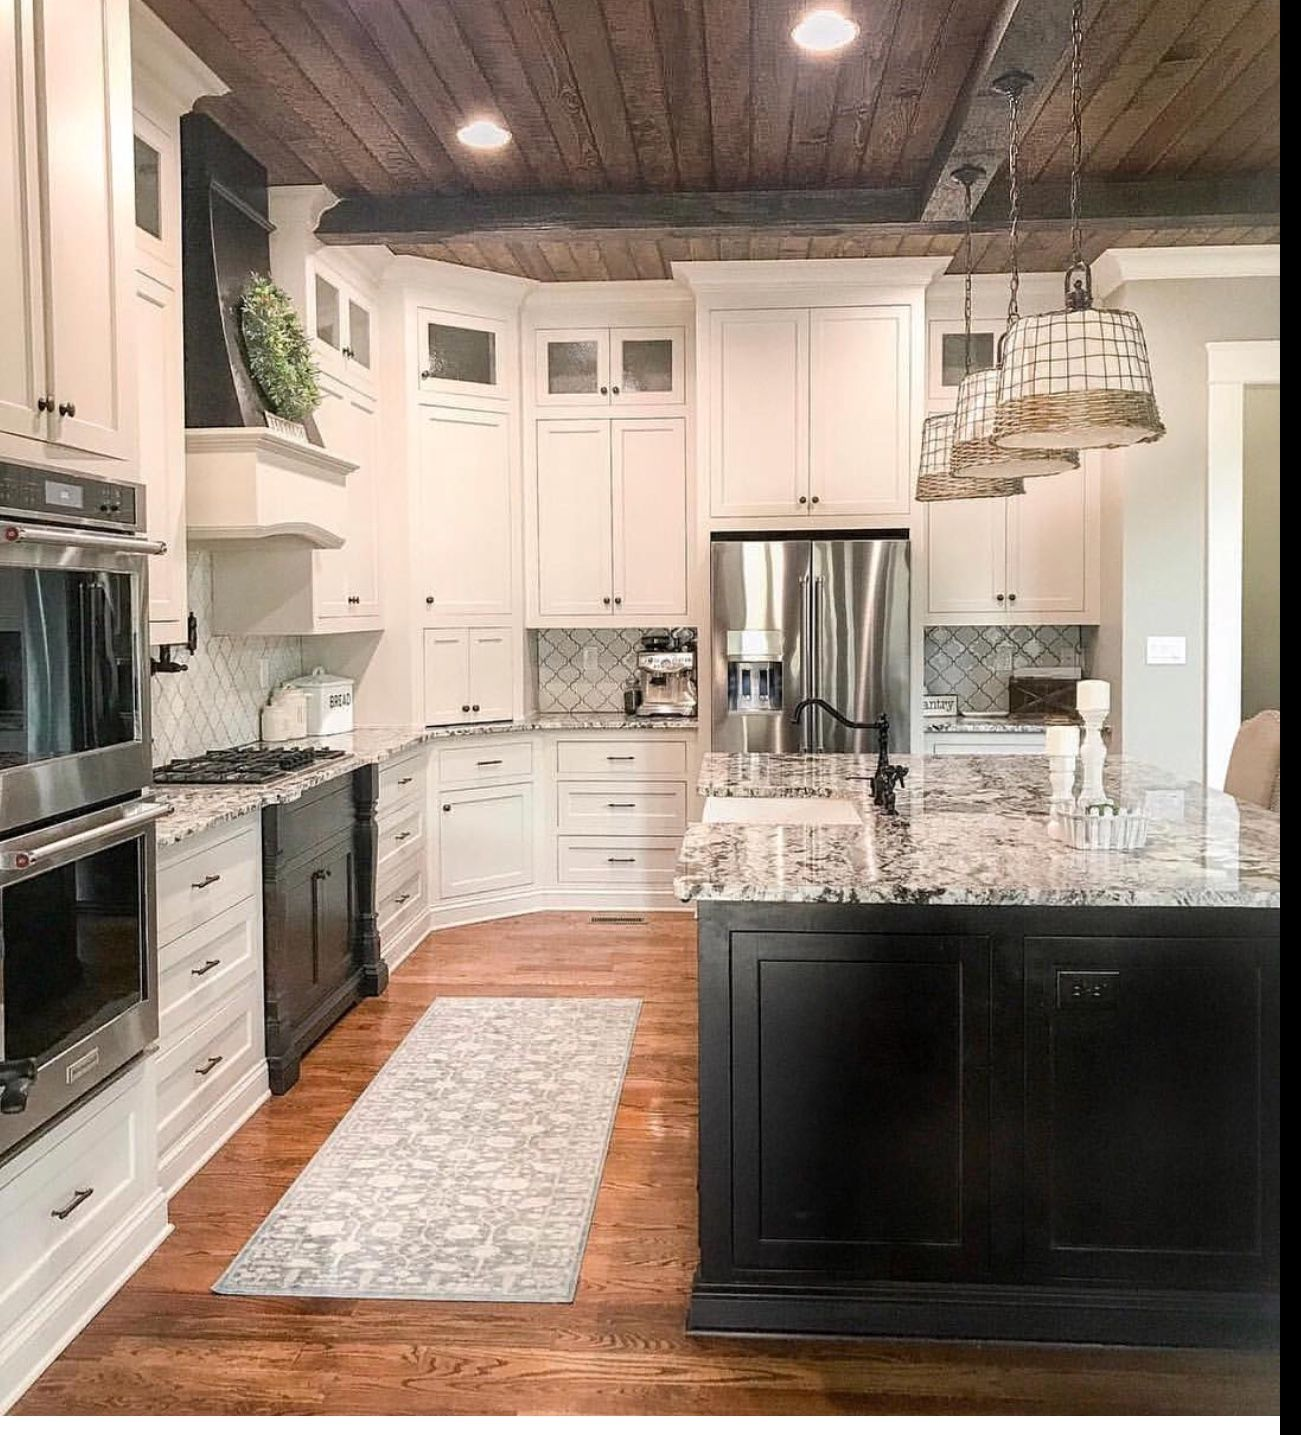 Farmhouse Kitchen With Images Home Remodeling Rustic Kitchen Home Decor Kitchen